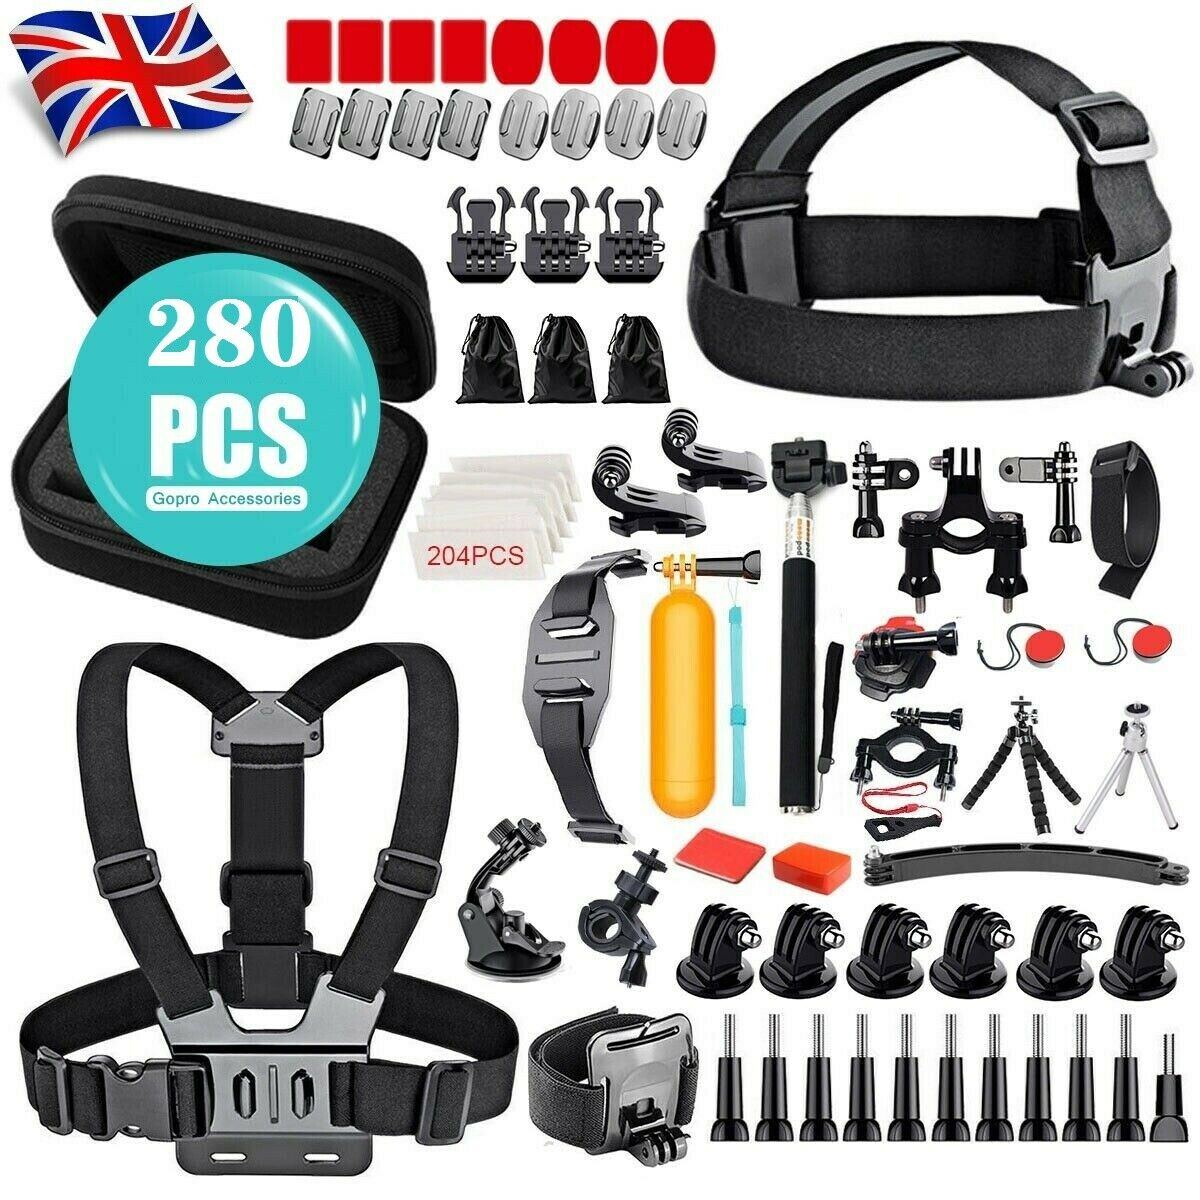 280Pcs GoPro Accessory Kit Action Camera Accessories Head Mount Chest Strap Sets